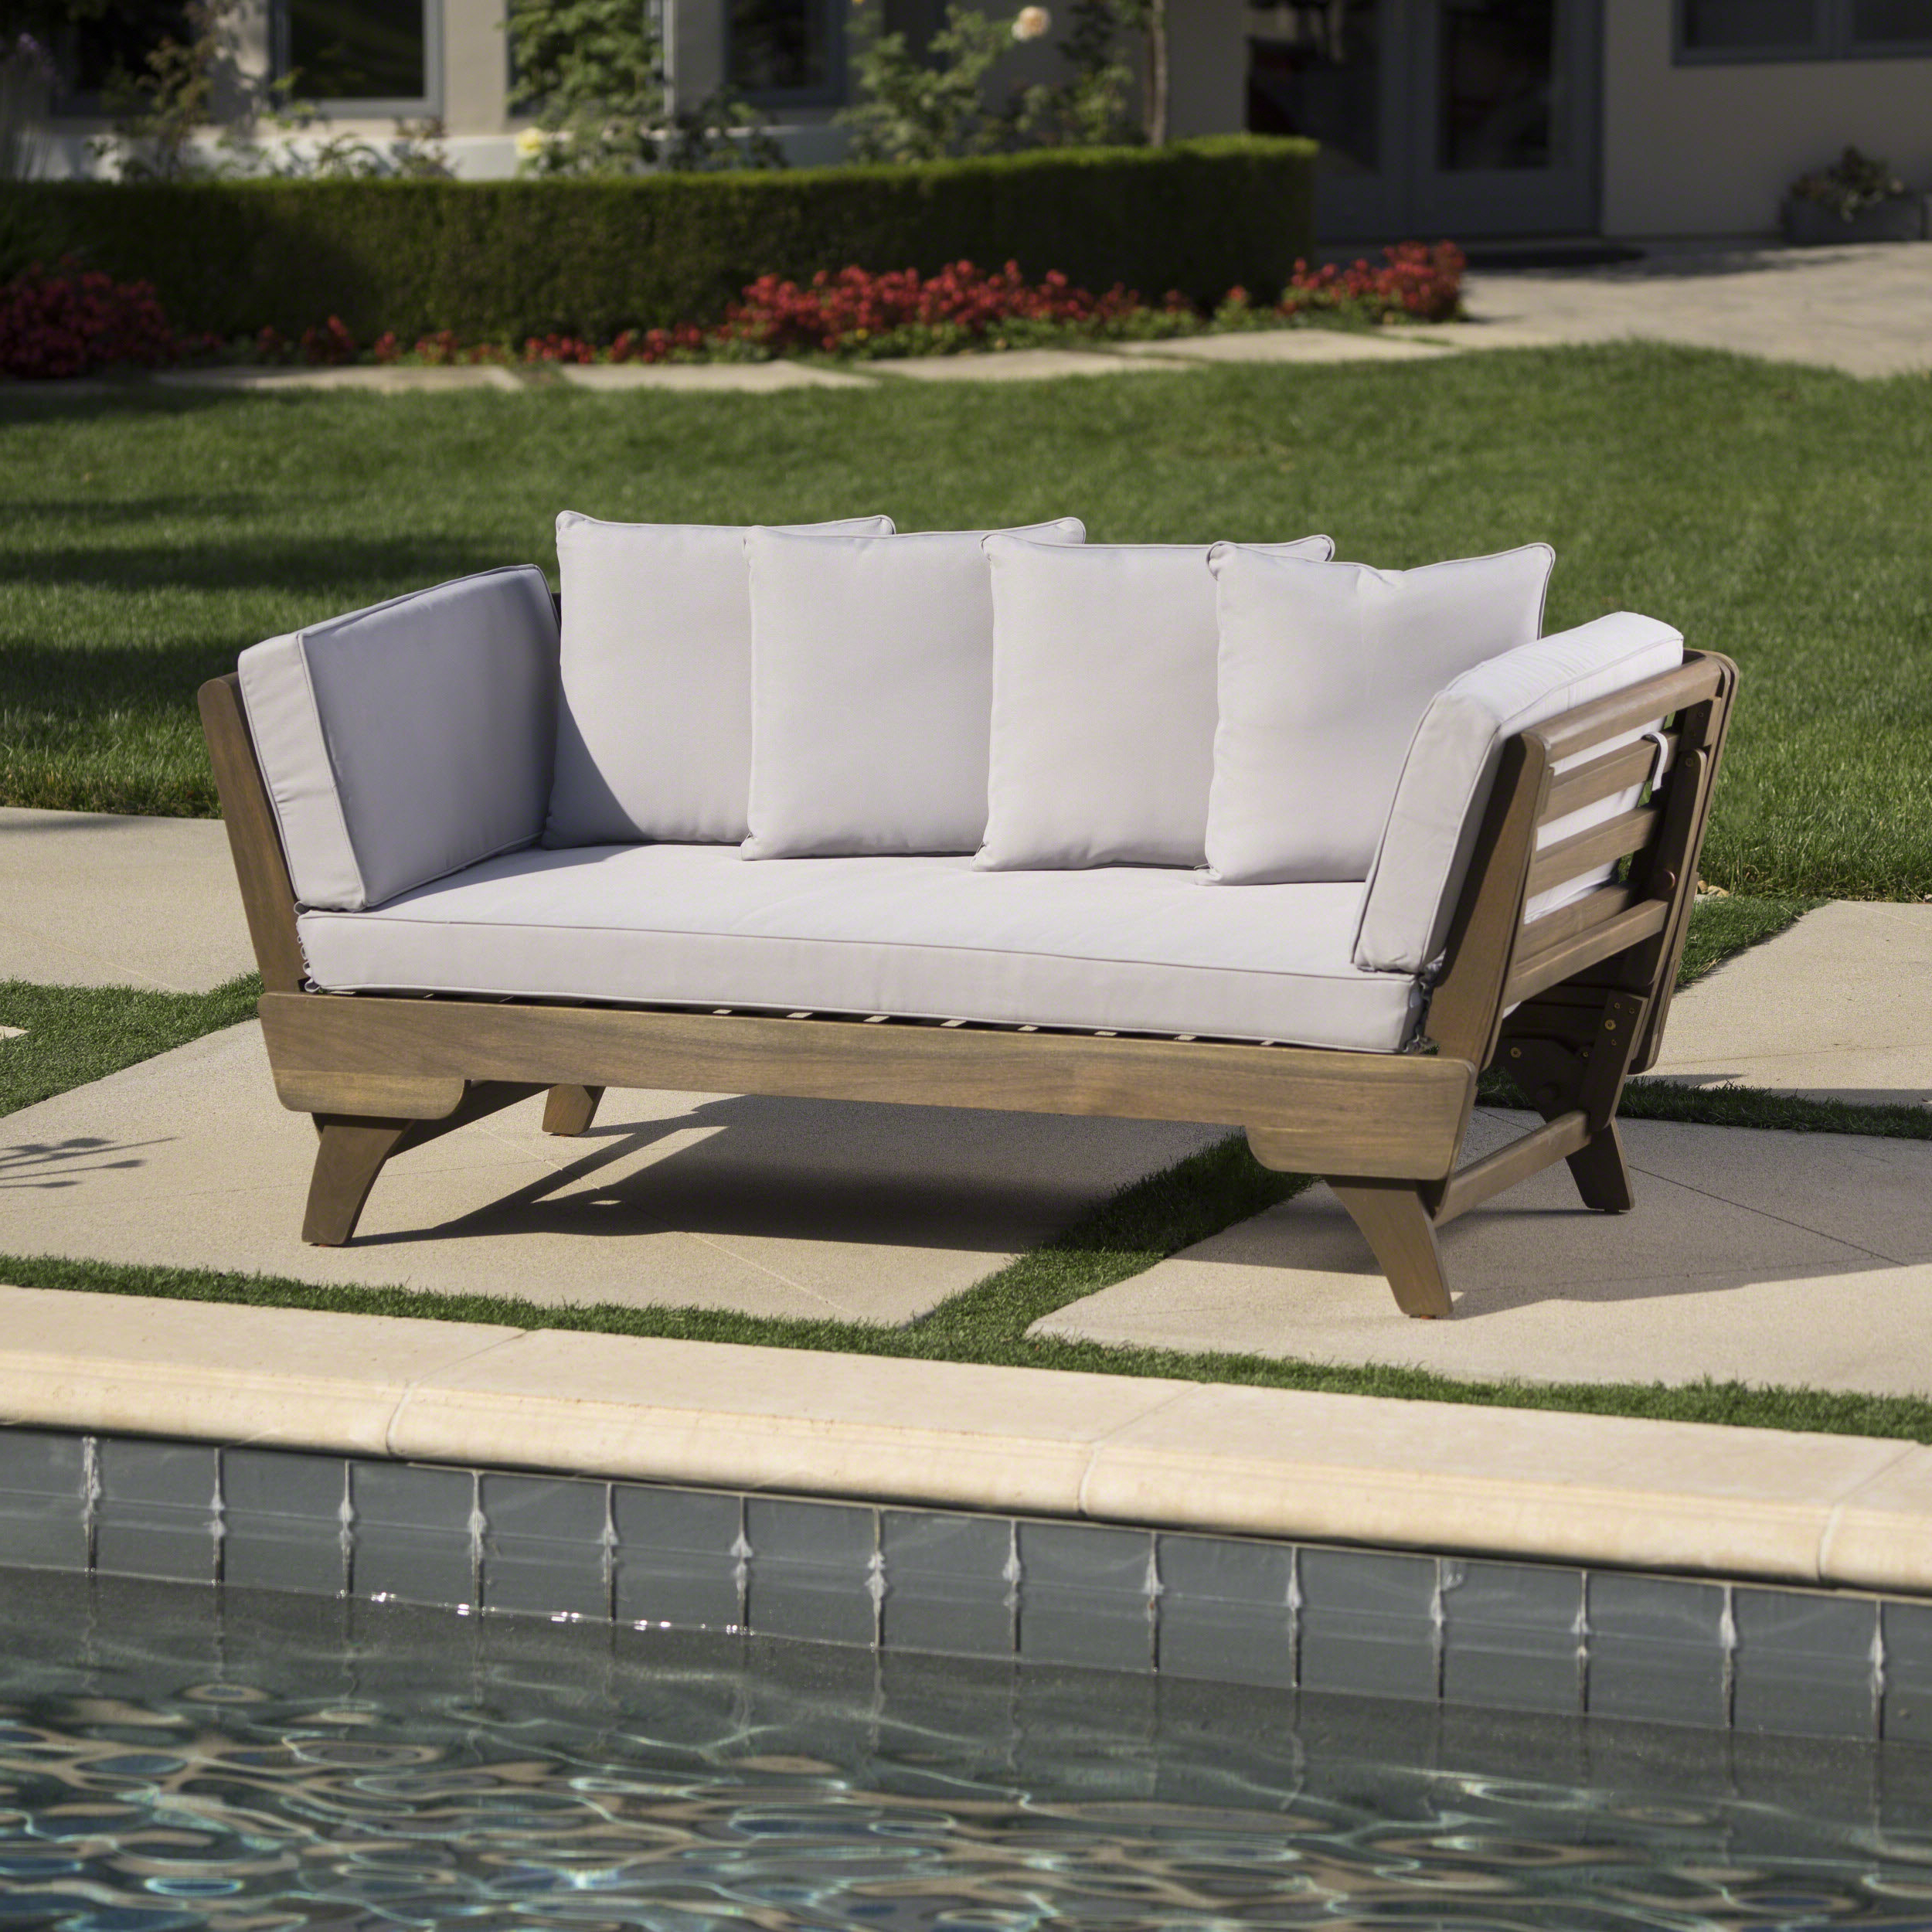 Aubrie Patio Daybeds With Cushions Throughout Newest Ellanti Teak Patio Daybed With Cushions (View 7 of 25)